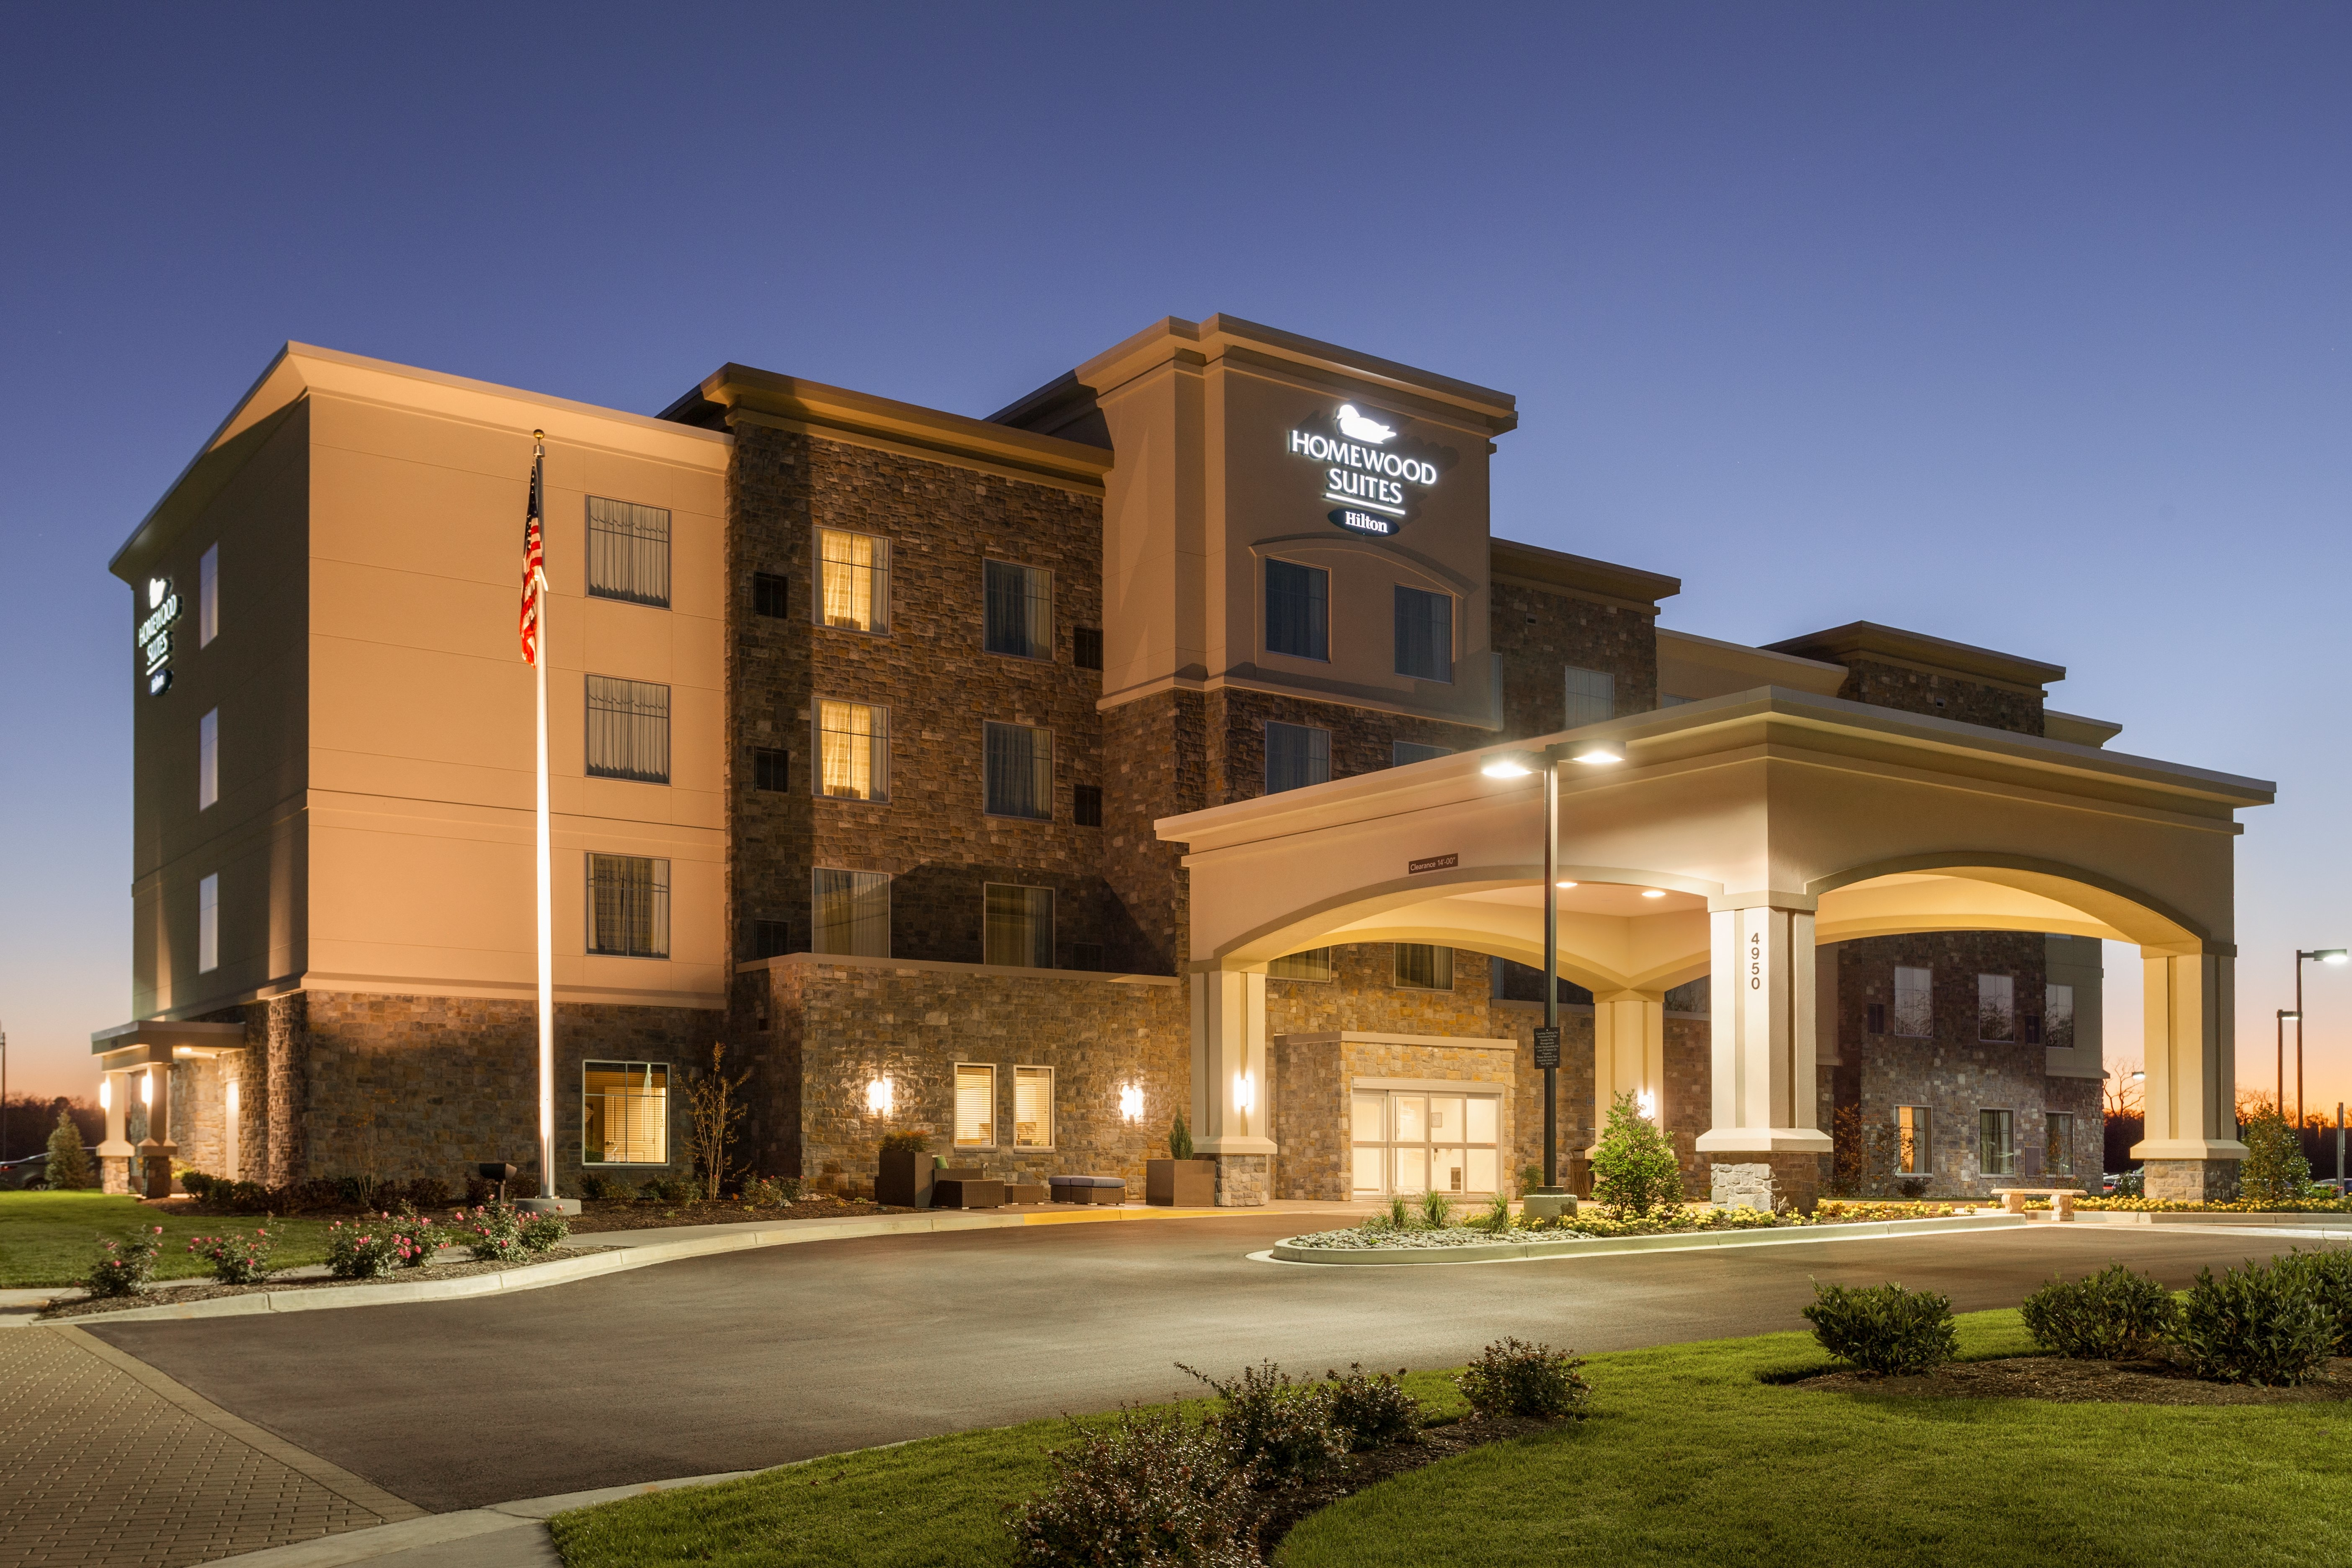 Homewood Suites by Hilton Frederick image 0